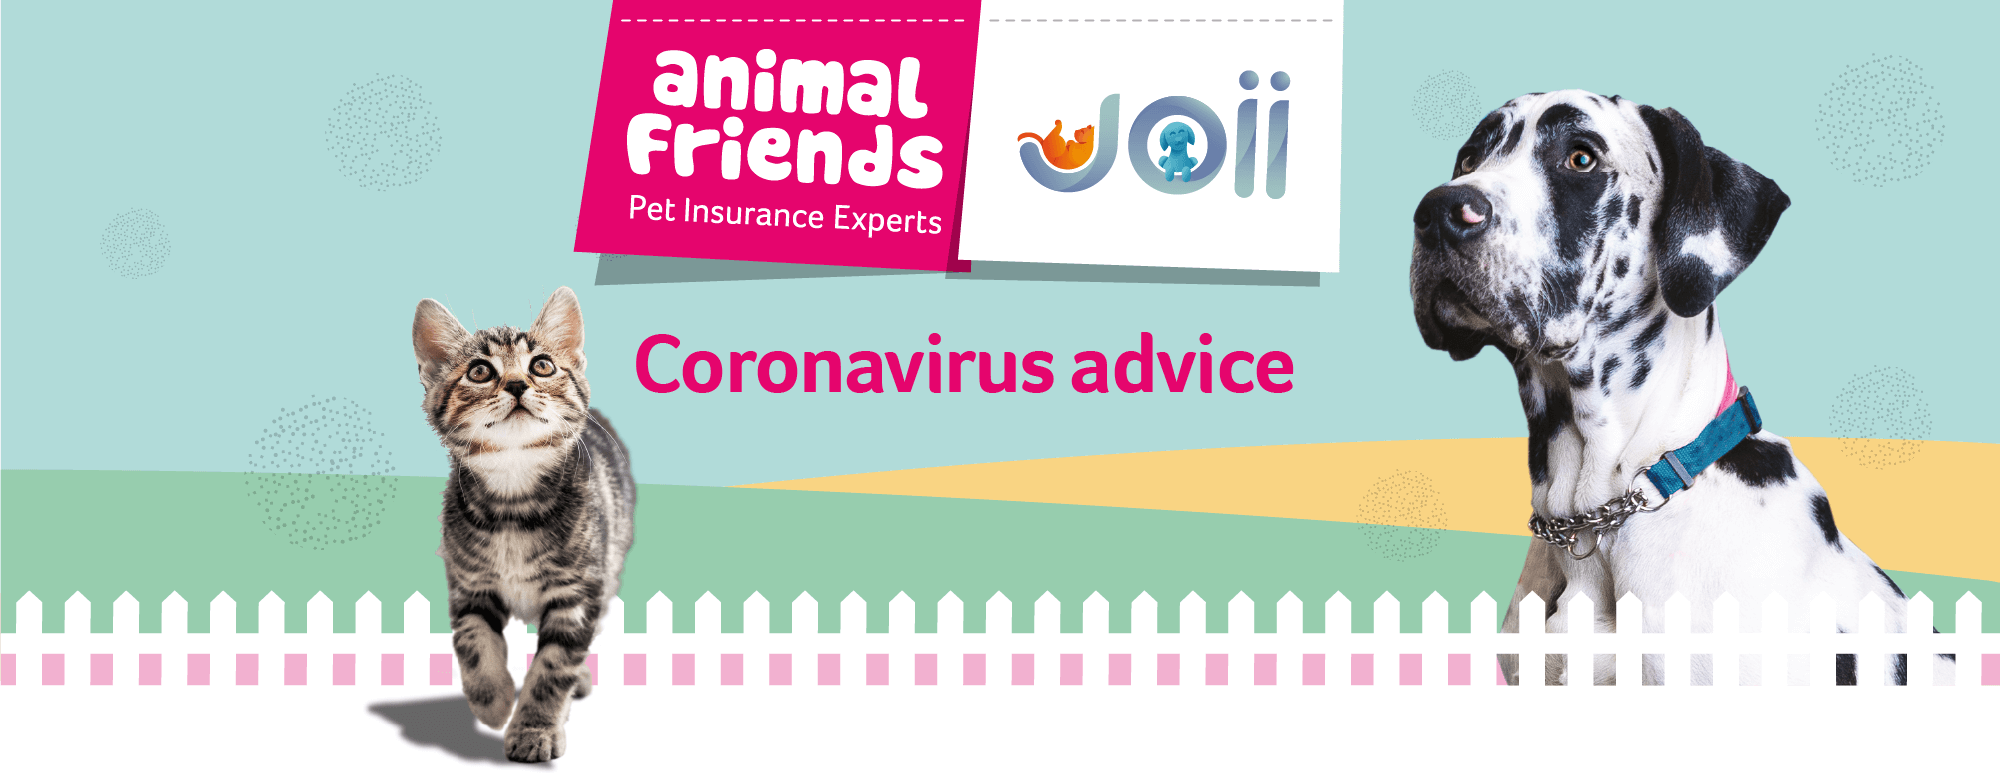 Looking after your pets during the Coronavirus outbreak